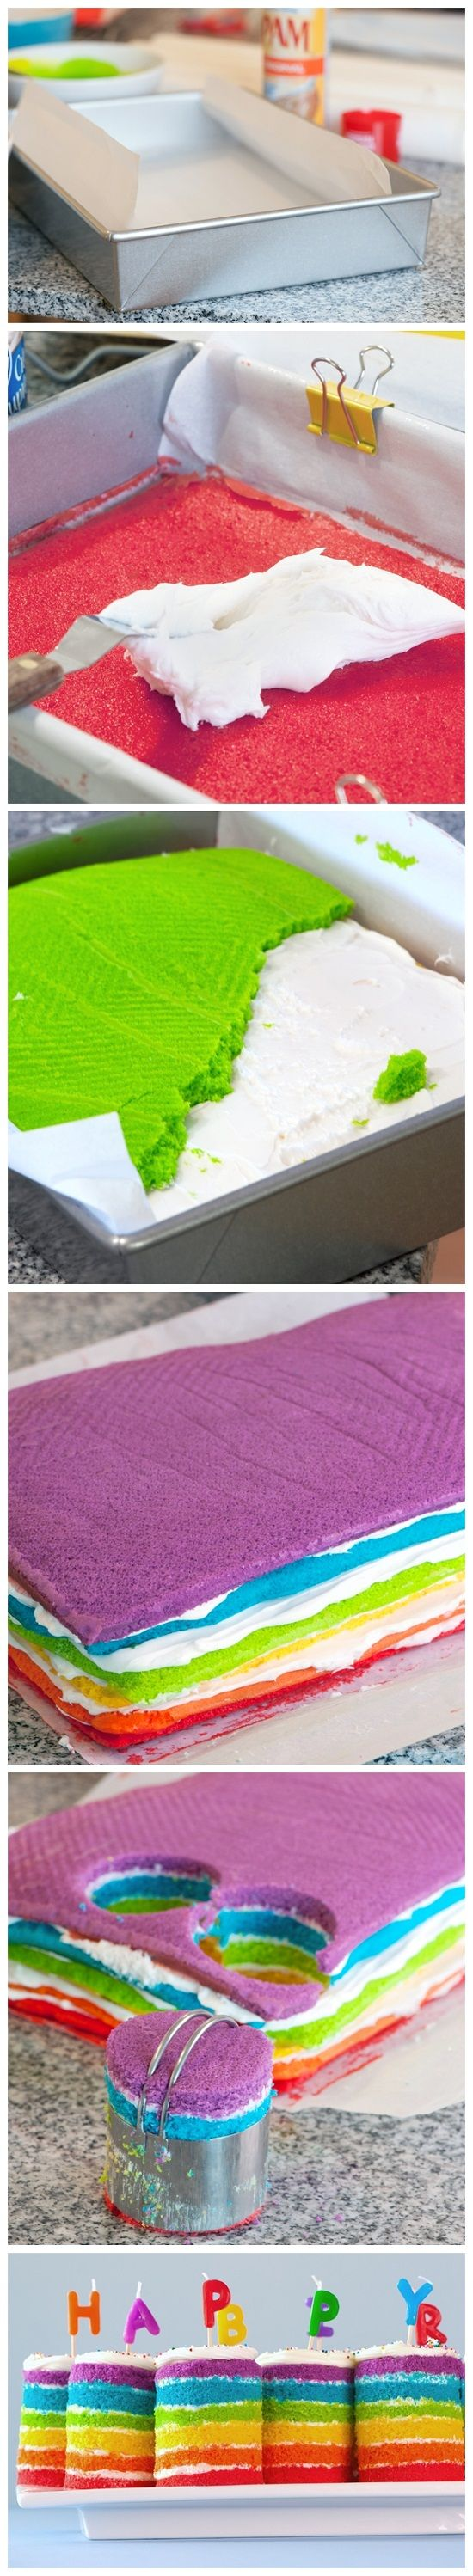 Teeny Tiny Rainbow Cakes-2 boxes Better Crocker SuperMoist white cake mix, mixed up according to package directions  3 tubs white frosting  parchment paper  9″x13″ inch pans  liquid food coloring (I used colors from both the classic and neon sets)